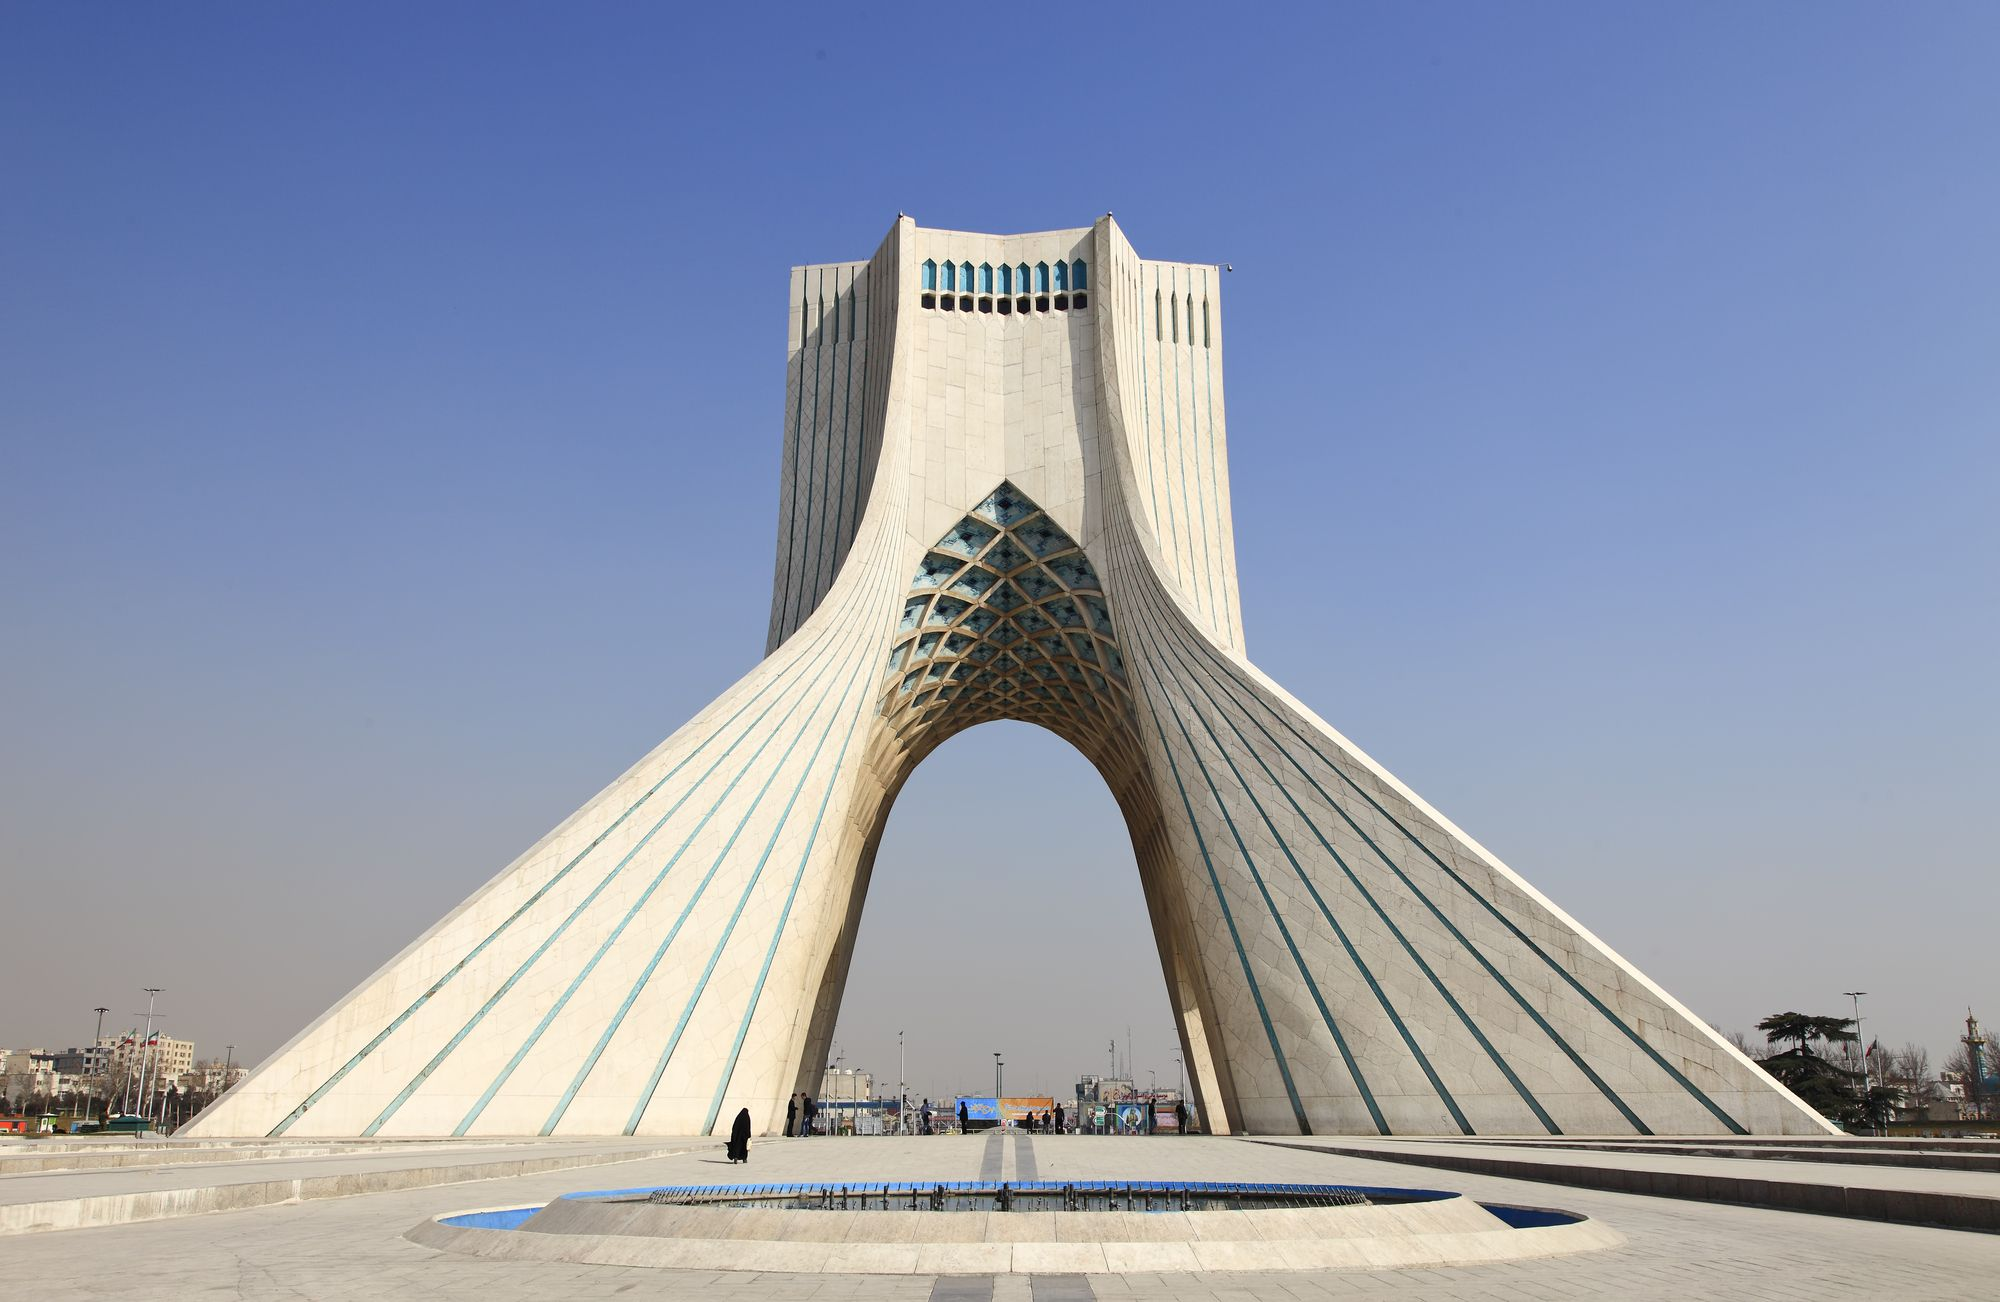 Completed in 1971 in Tehran, Iran. Commissioned to celebrate the 2500th anniversary of the Persian Empire, the Azadi Tower has been a site of celebration, unrest, and revolution....